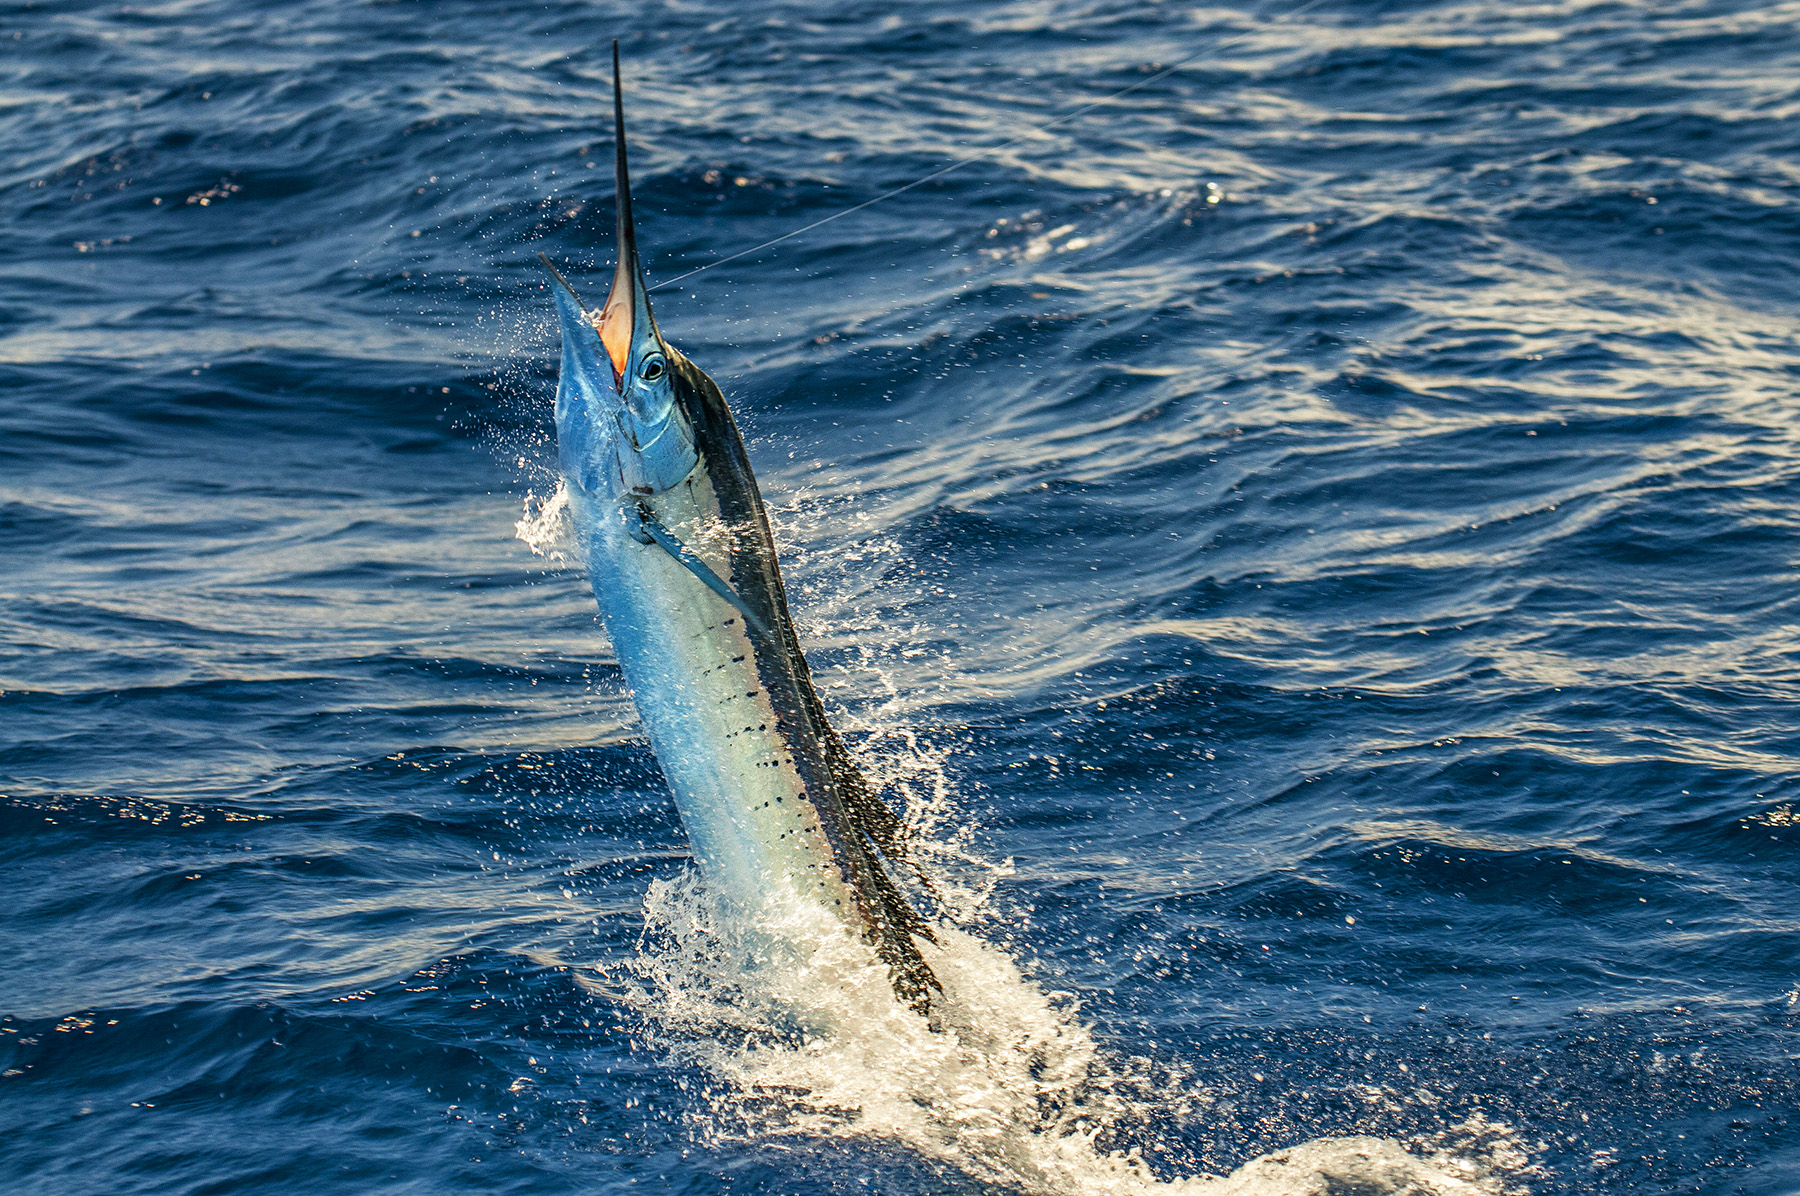 For episodes on Sailfish or Marlin, go to our Youtube Channel at  https://goo.gl/9M88Rv